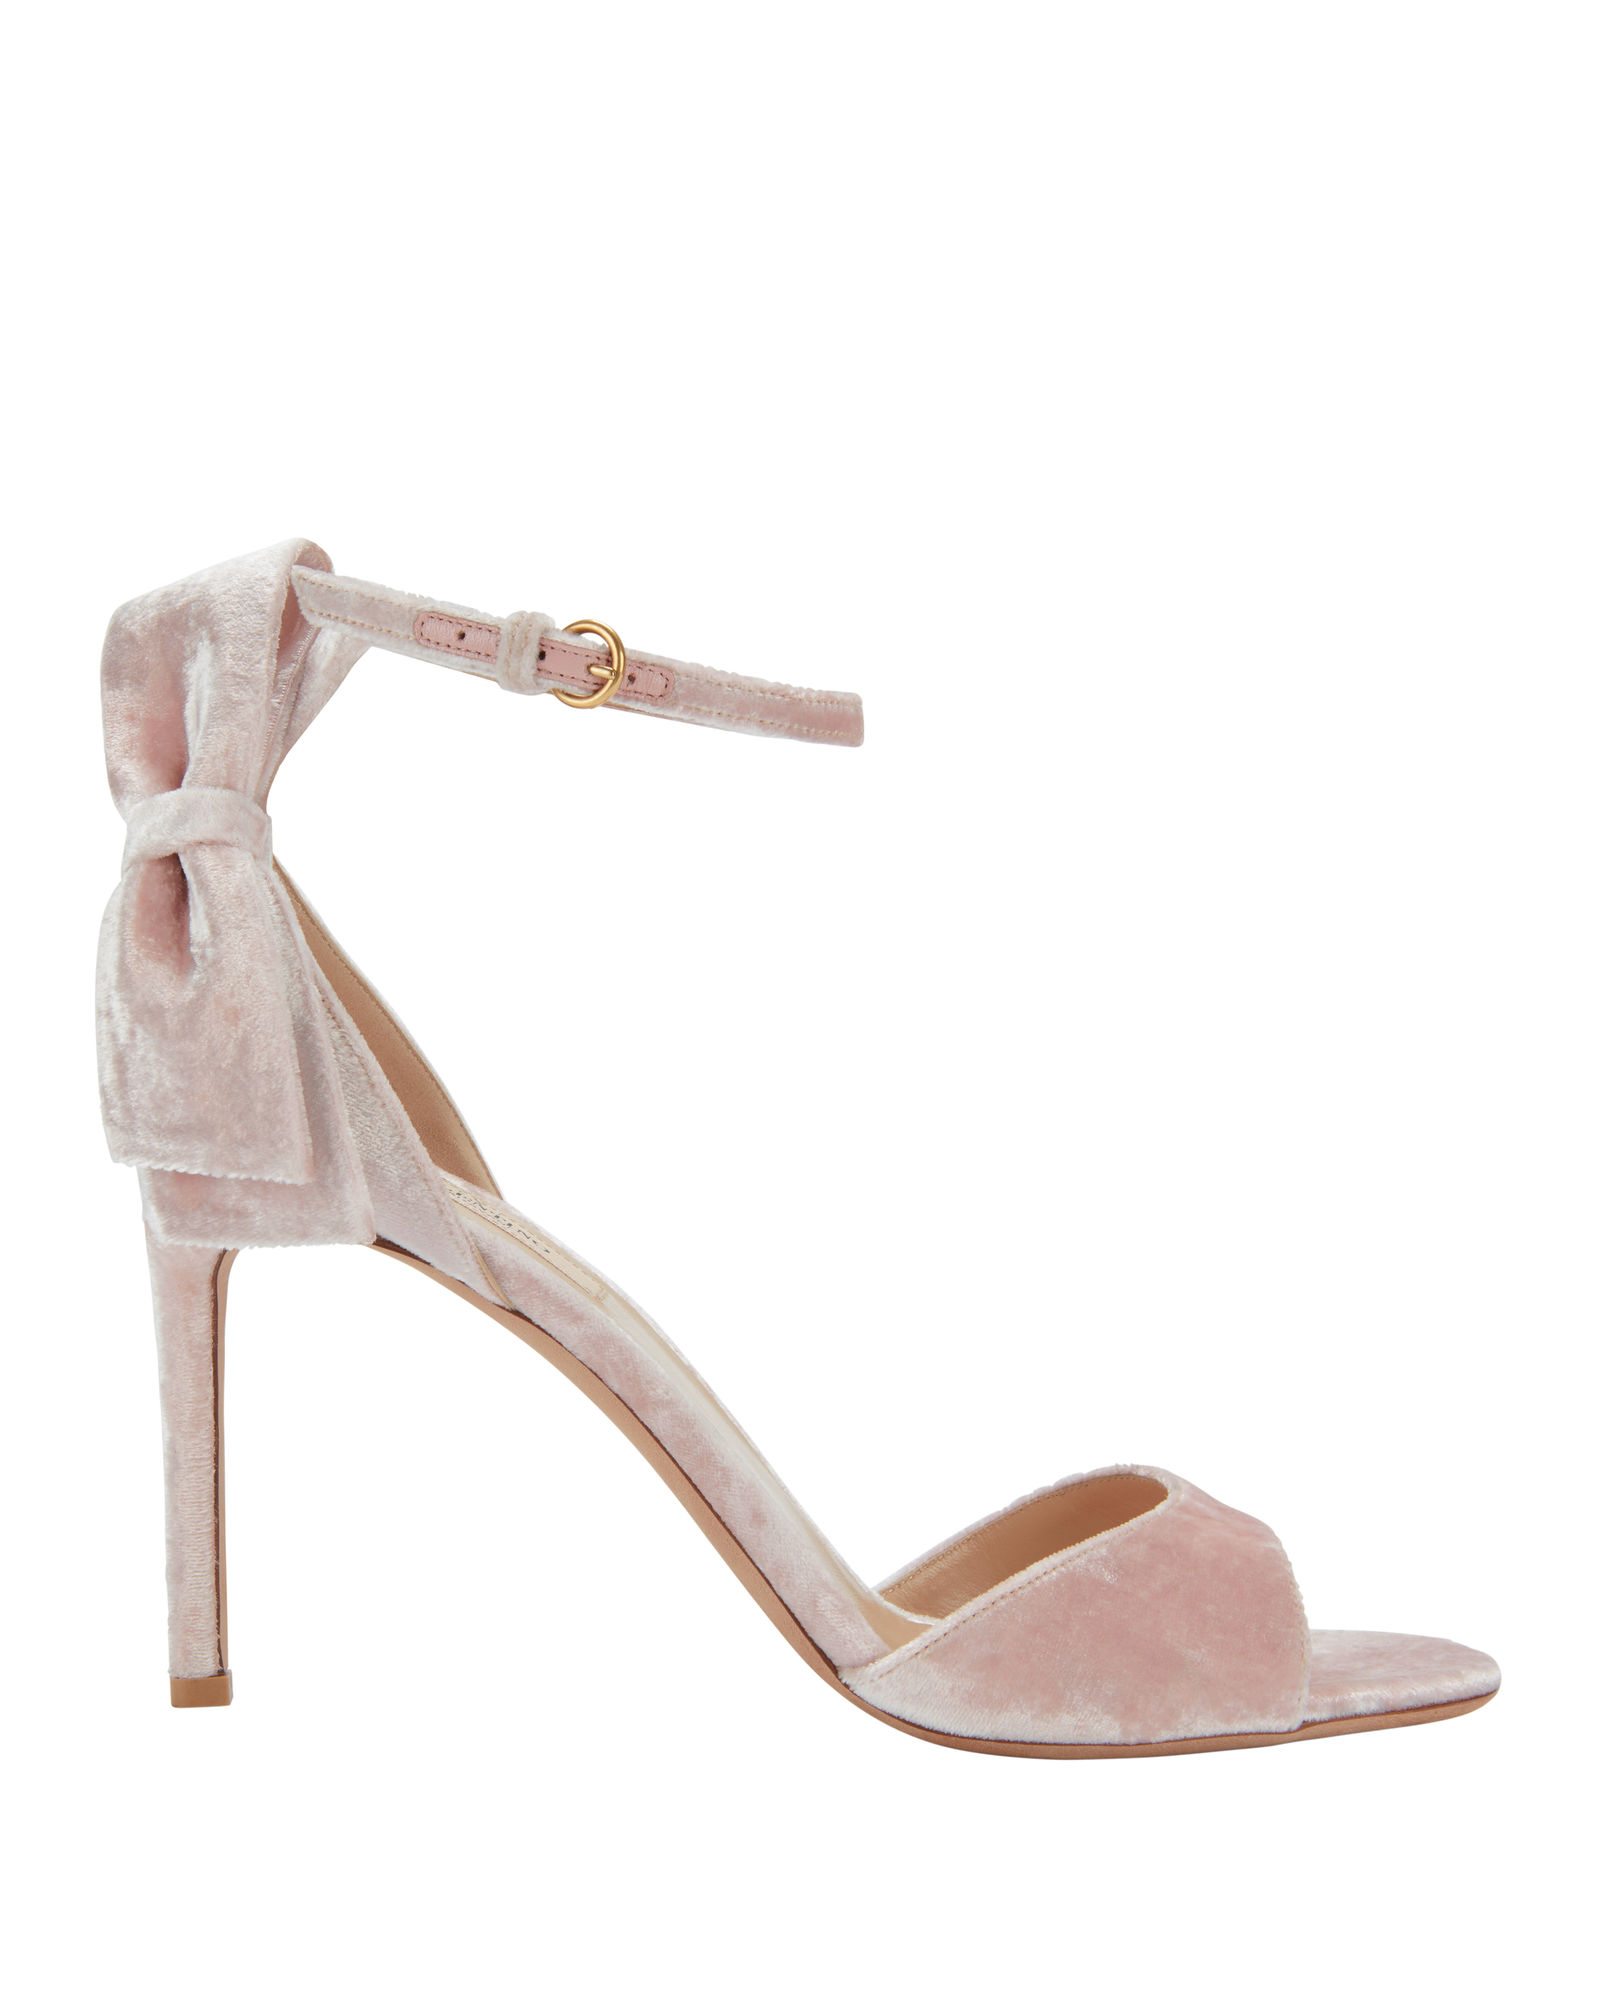 426f4e141b67 Valentino - Velvet Sandals with Bow - Pink